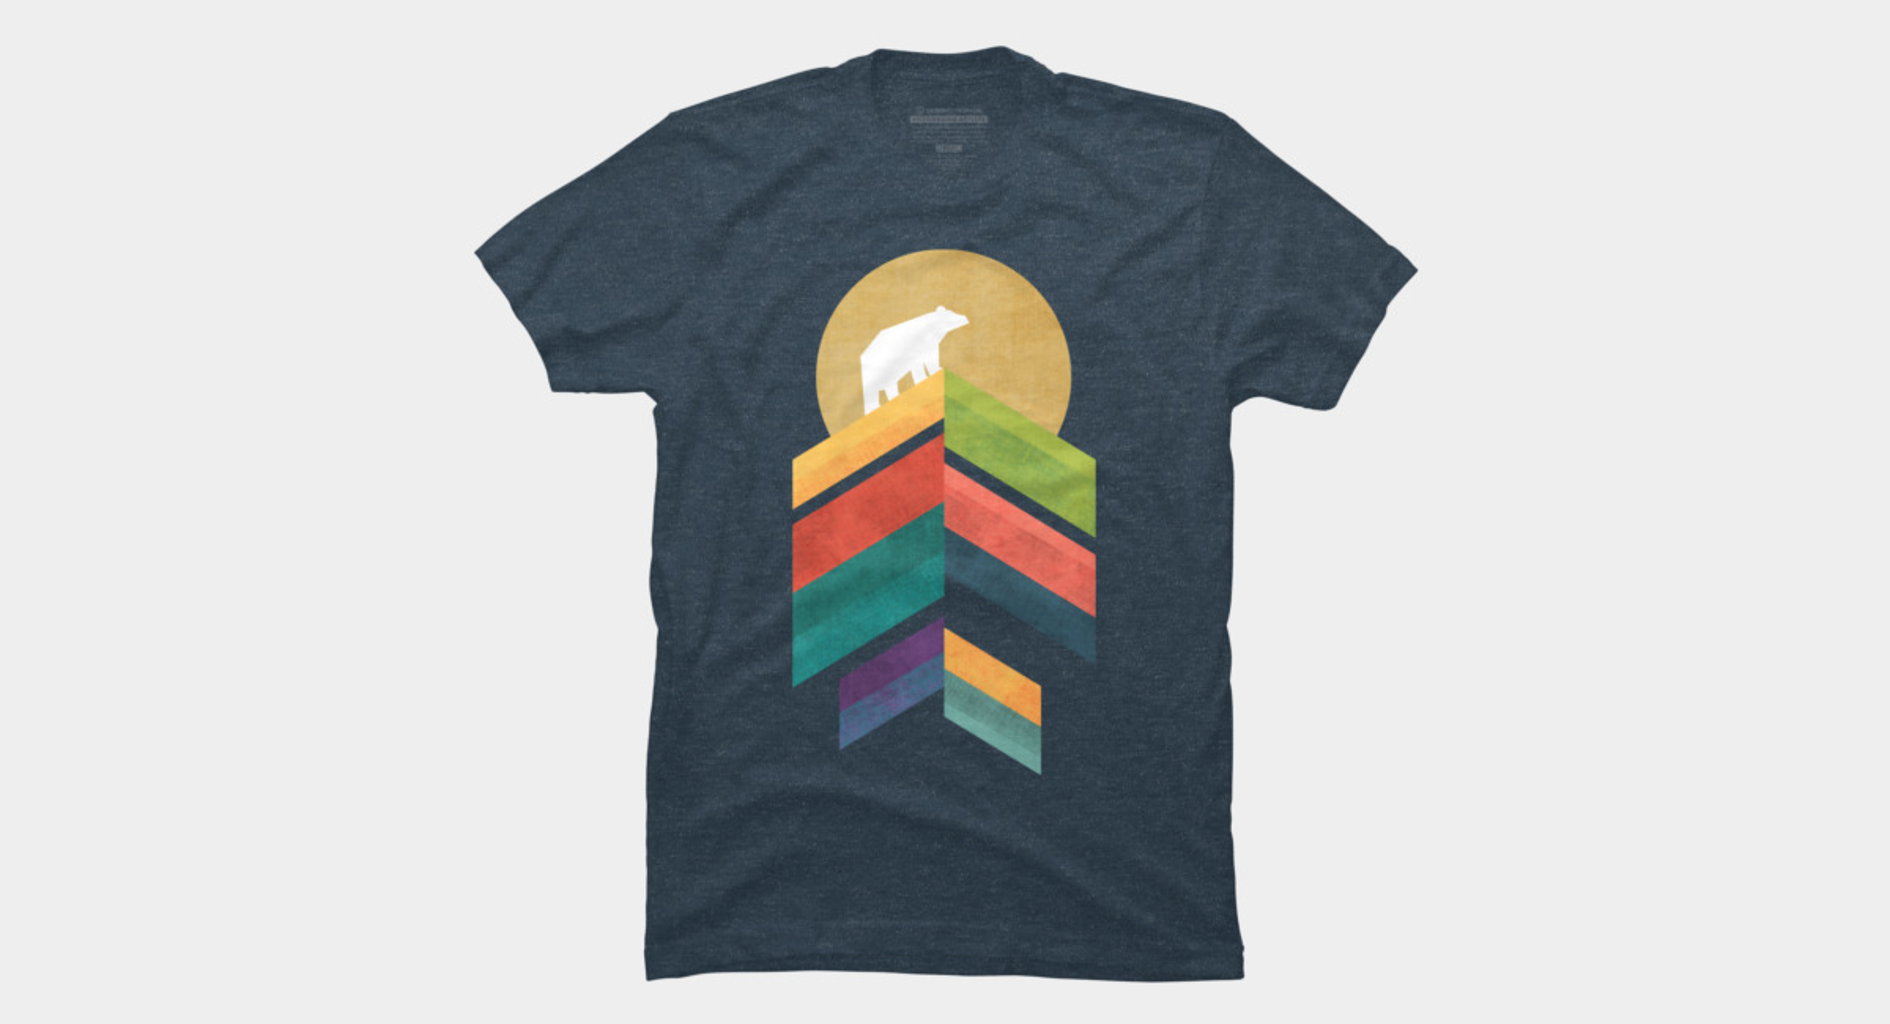 Design by Humans: High Peak